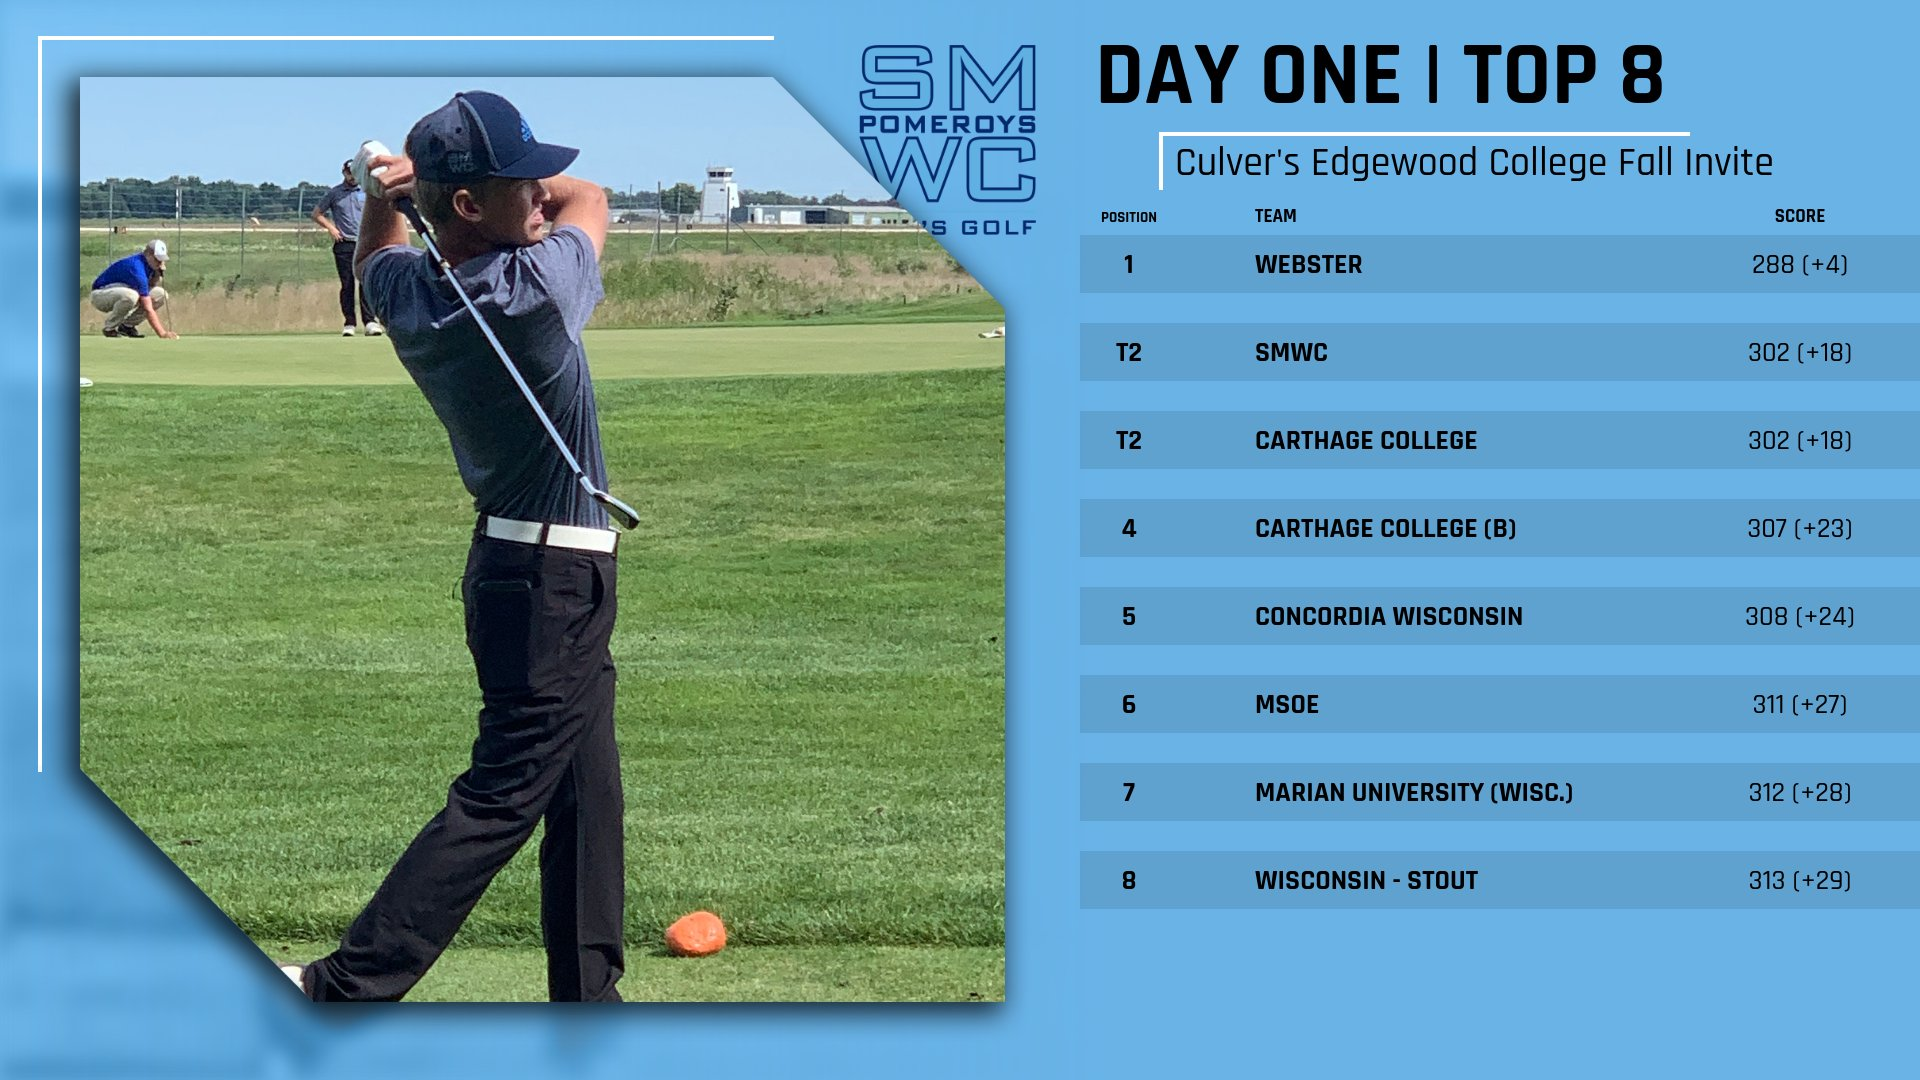 Men's Golf Tied for Second Place After Day 1 of the Culver's Edgewood Fall Invite